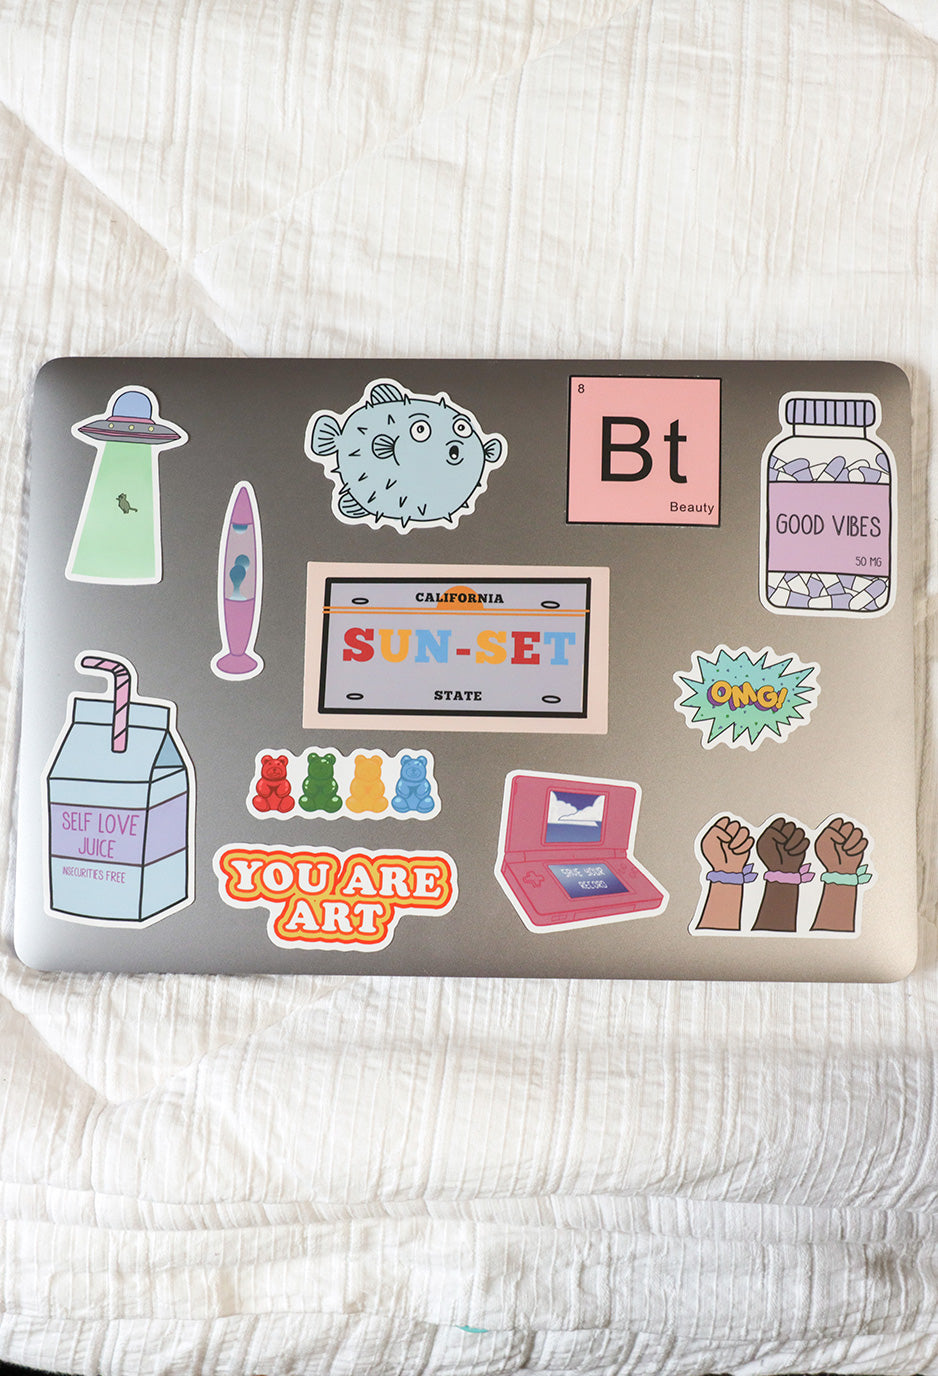 12 bright colored stickers on laptop in various shapes